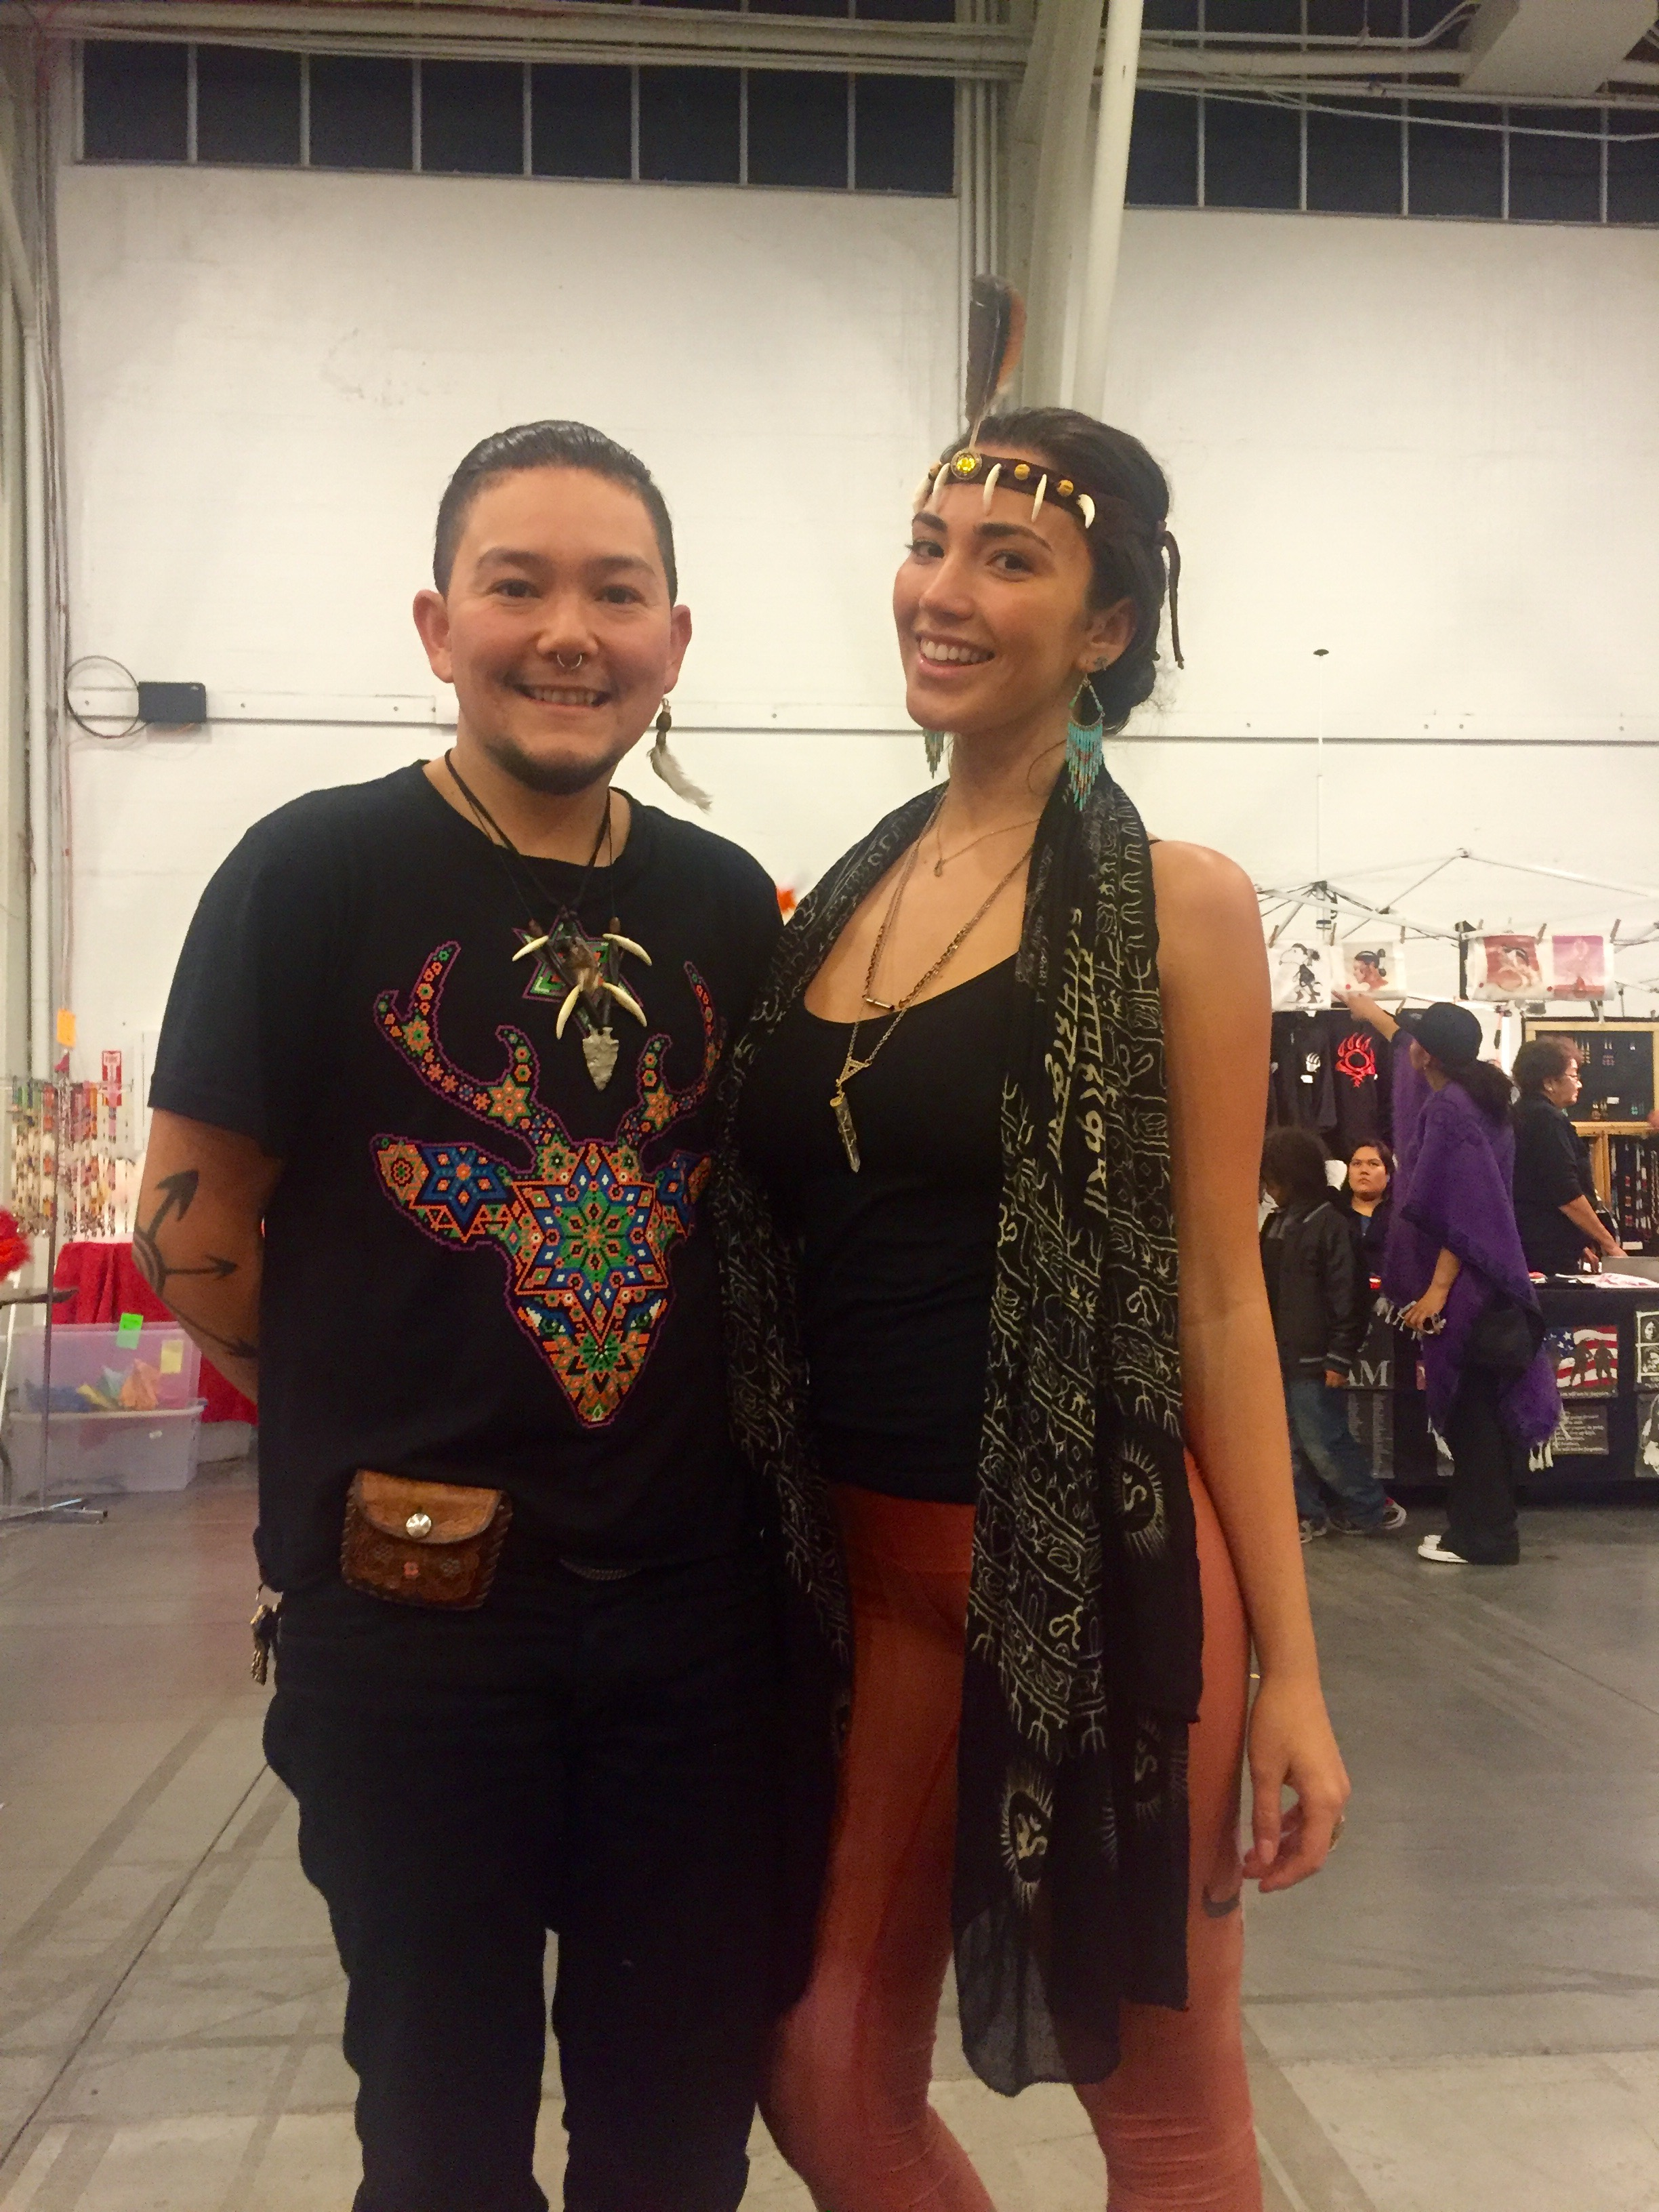 :: My big brother and I (rocking his headress/choker design) @the Two Spirit Pow Wow at Fort Mason in San Francisco, CA ::